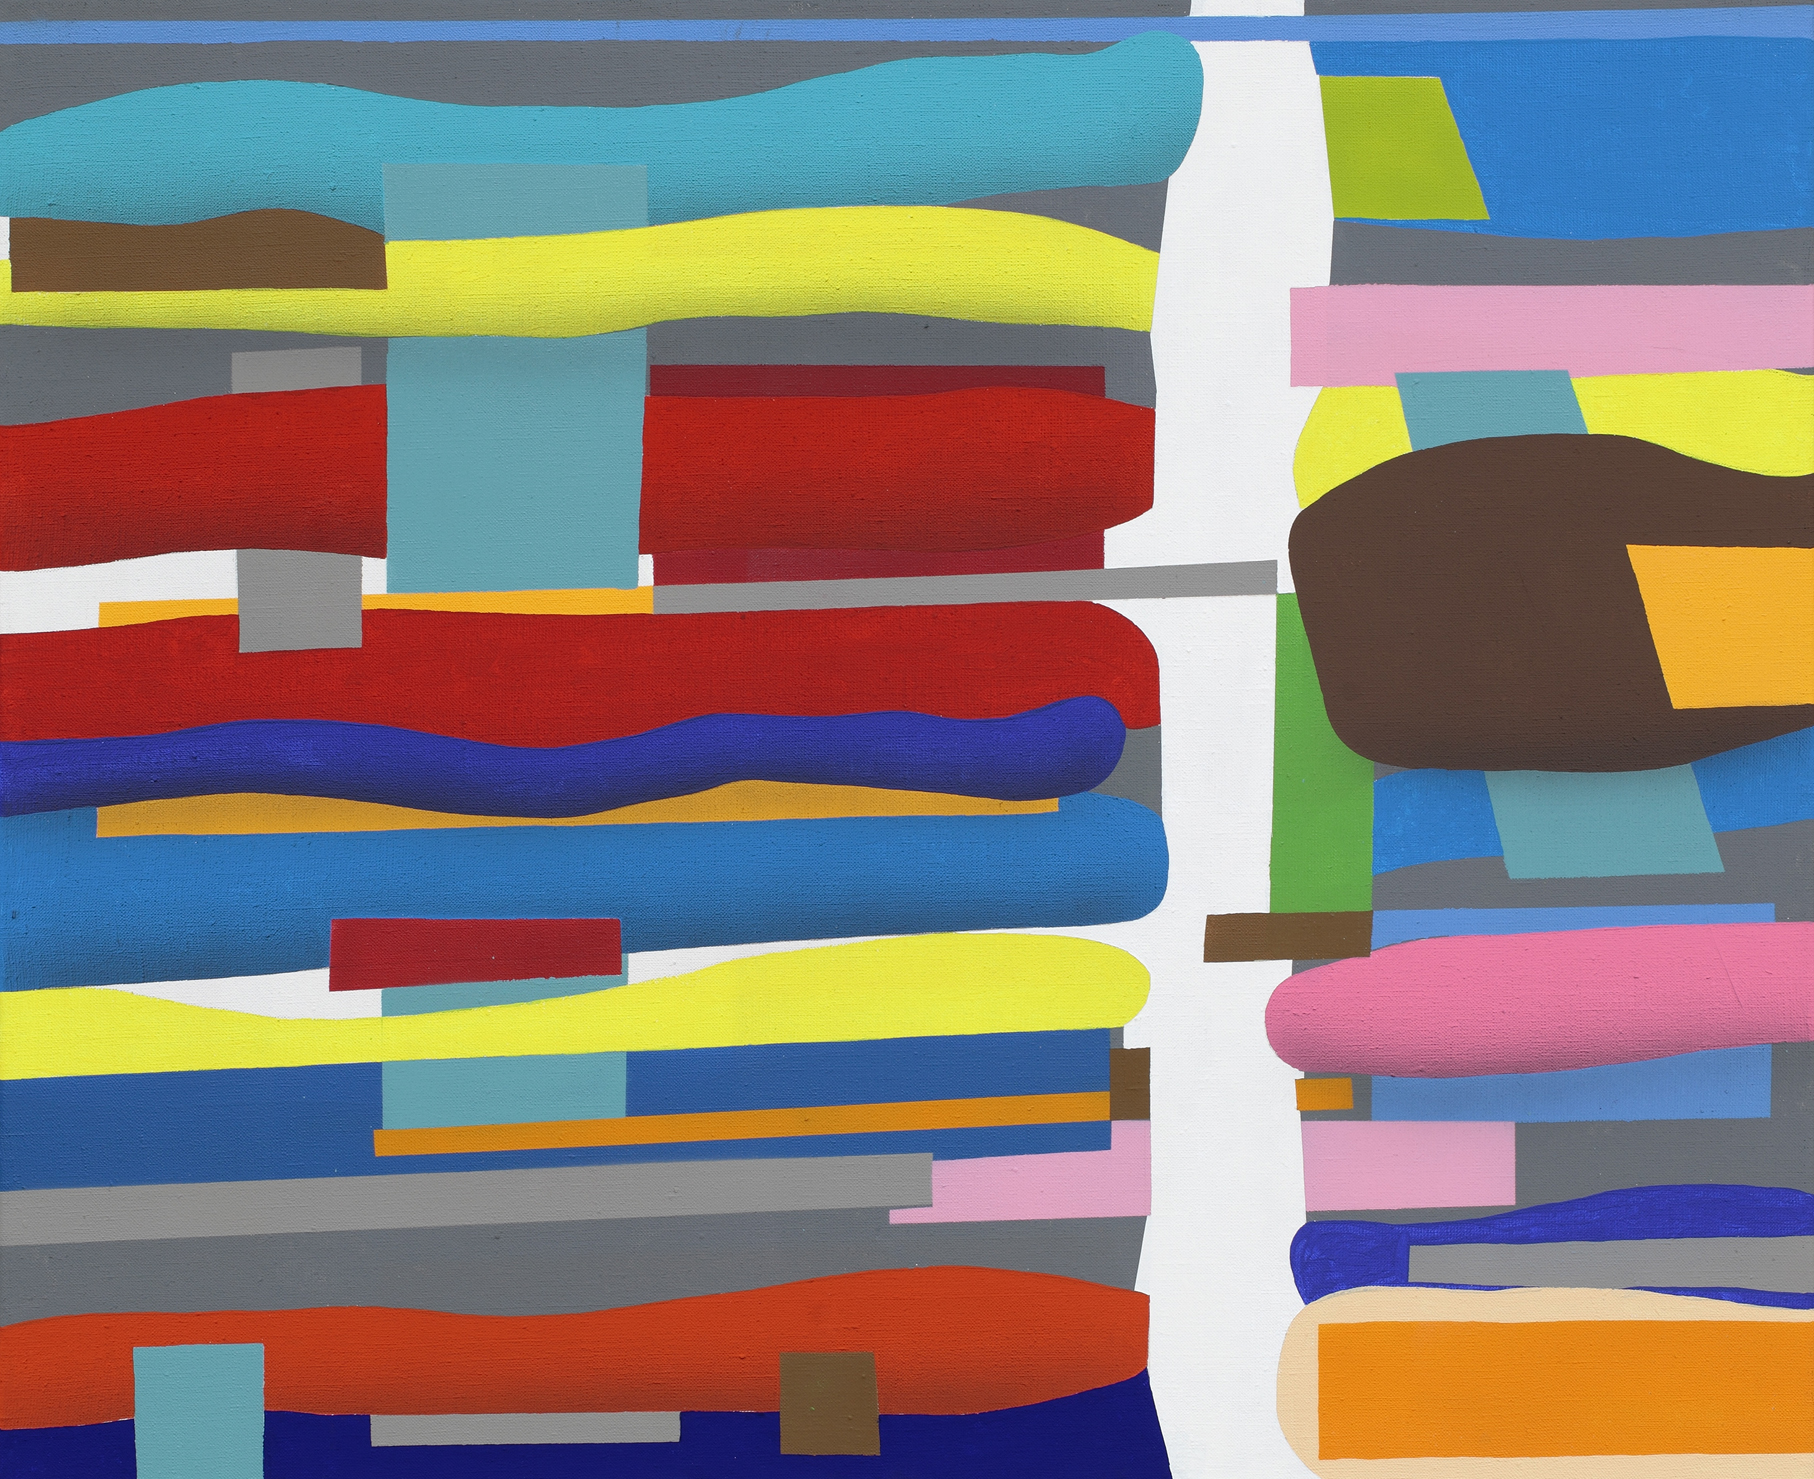 Touches Of Surface And Volume Forms XV. 2010, acrylic on canvas, 70 x 85 cm